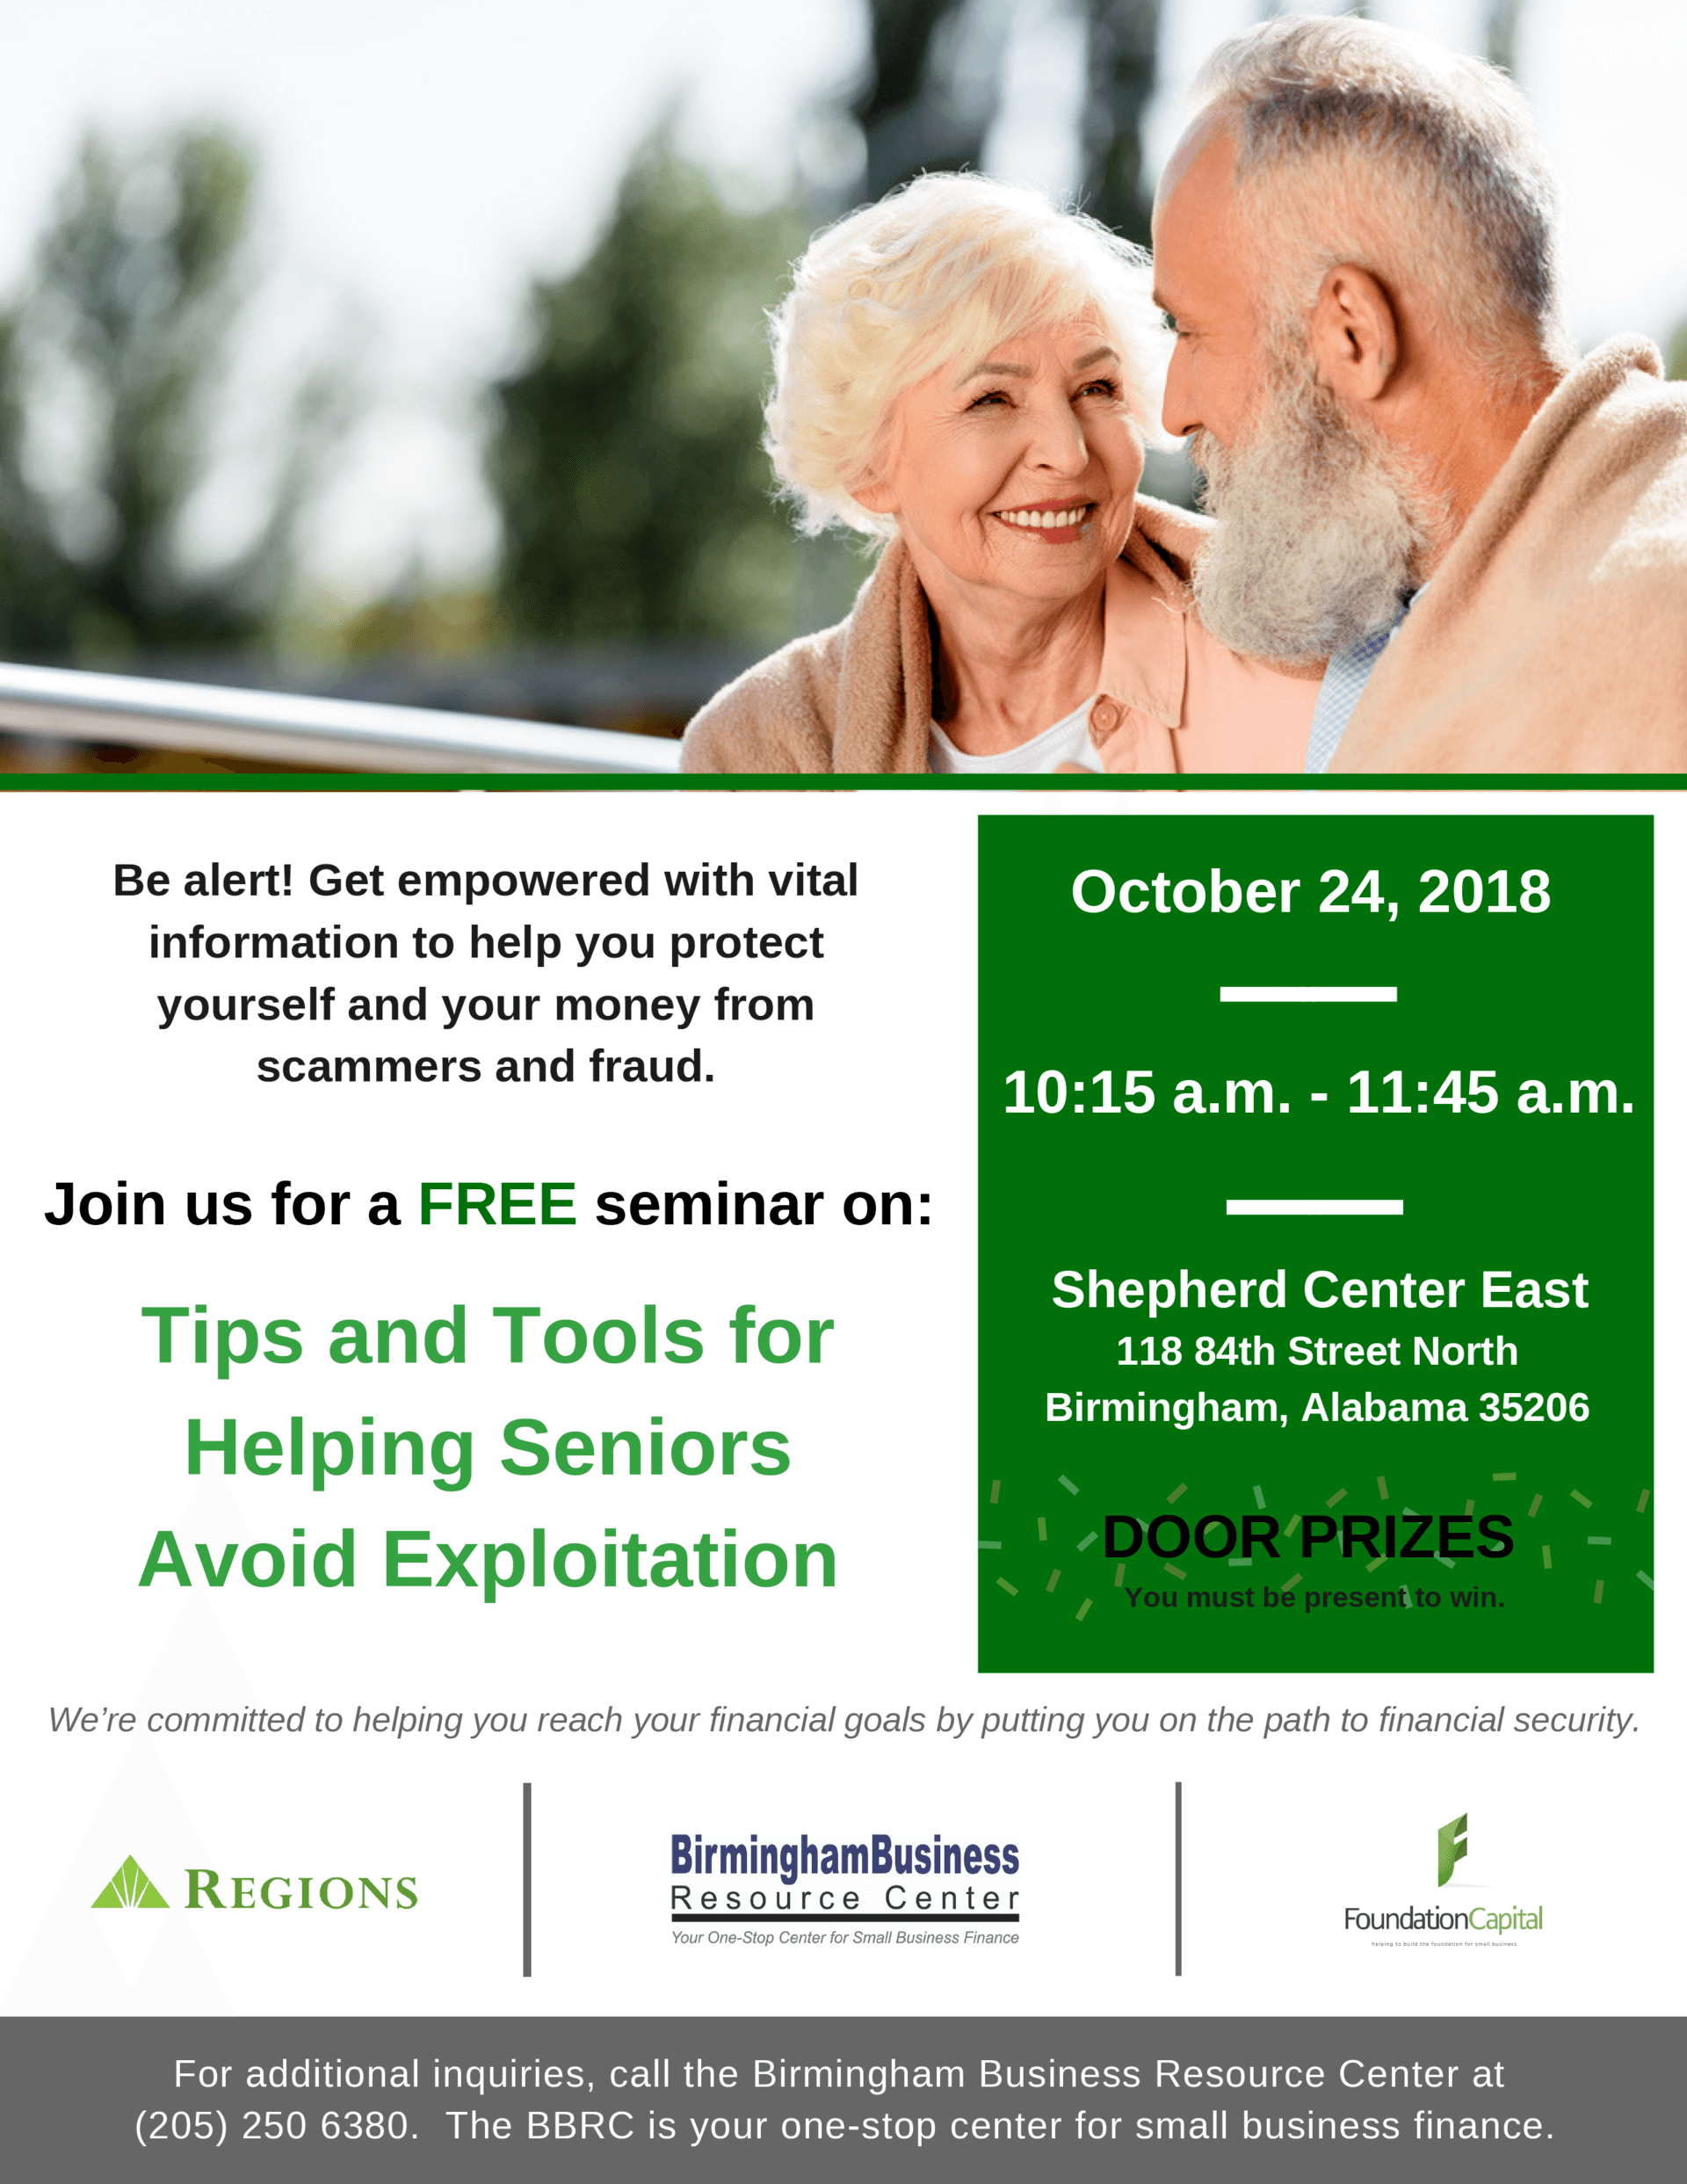 flyer for Tips and Tools for Helping Seniors